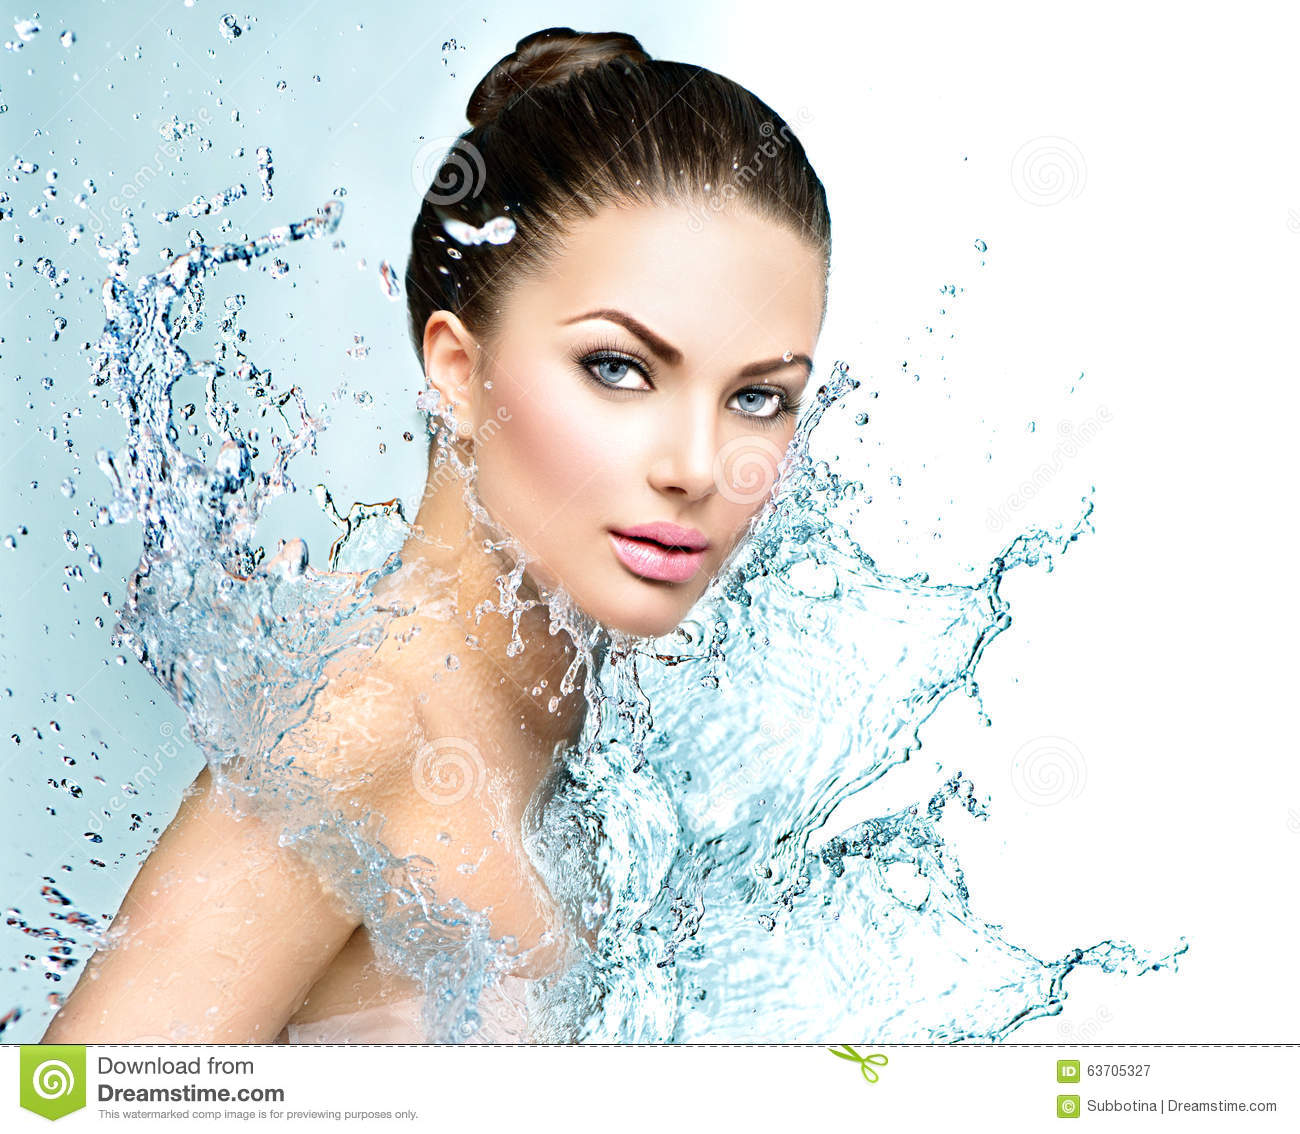 Beautiful Spa Woman With Splashes Of Water Stock Photo - Image ...